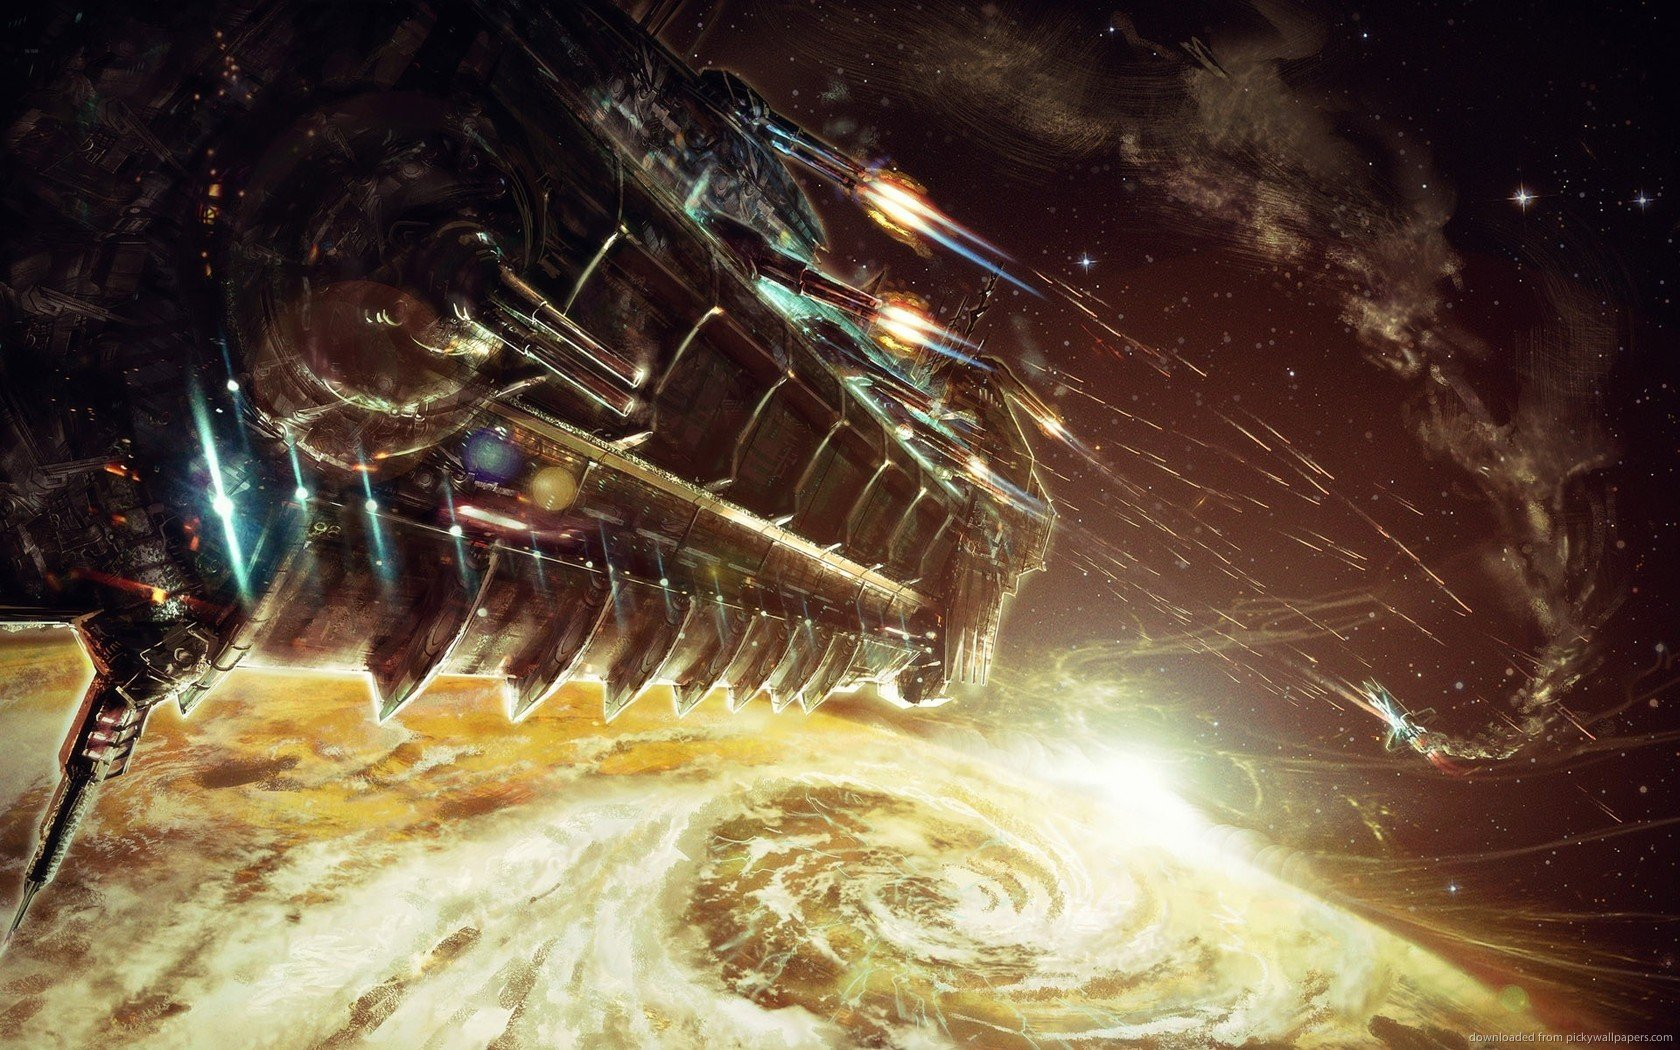 Download 1680x1050 Spaceship Battle Wallpaper 1680x1050